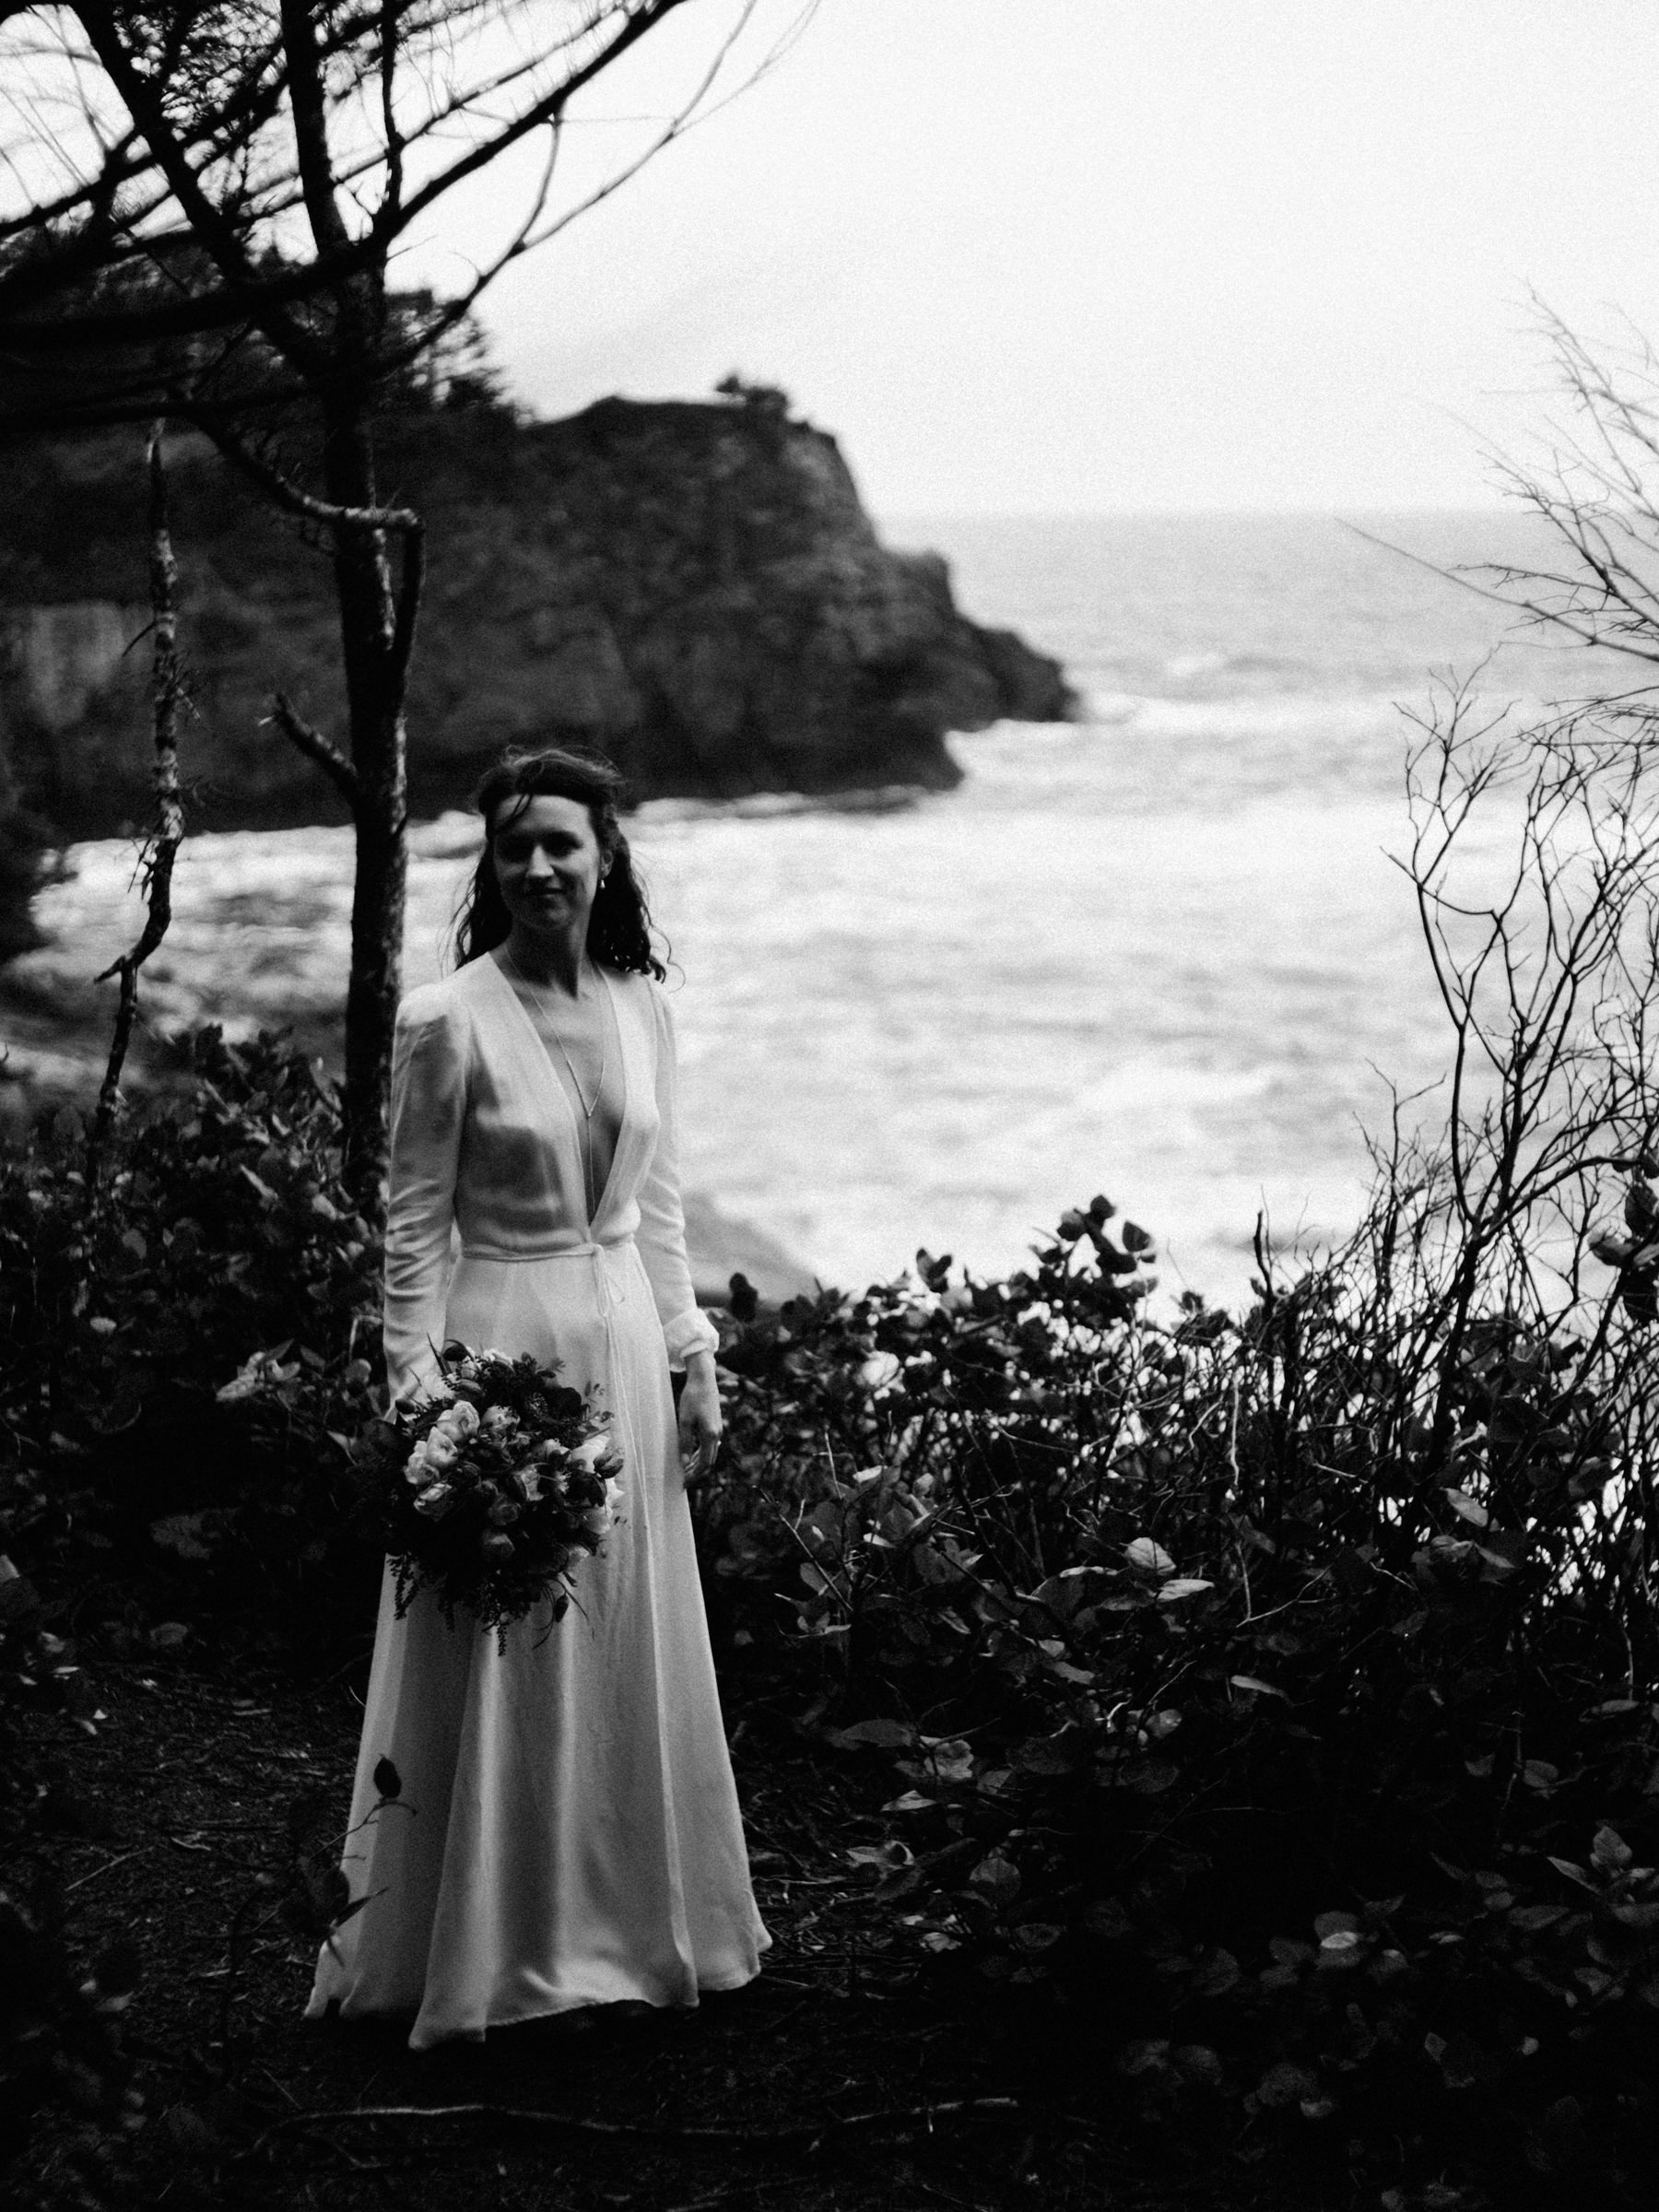 175-cloudy-pnw-elopement-on-film-at-cape-flattery-in-washington.jpg